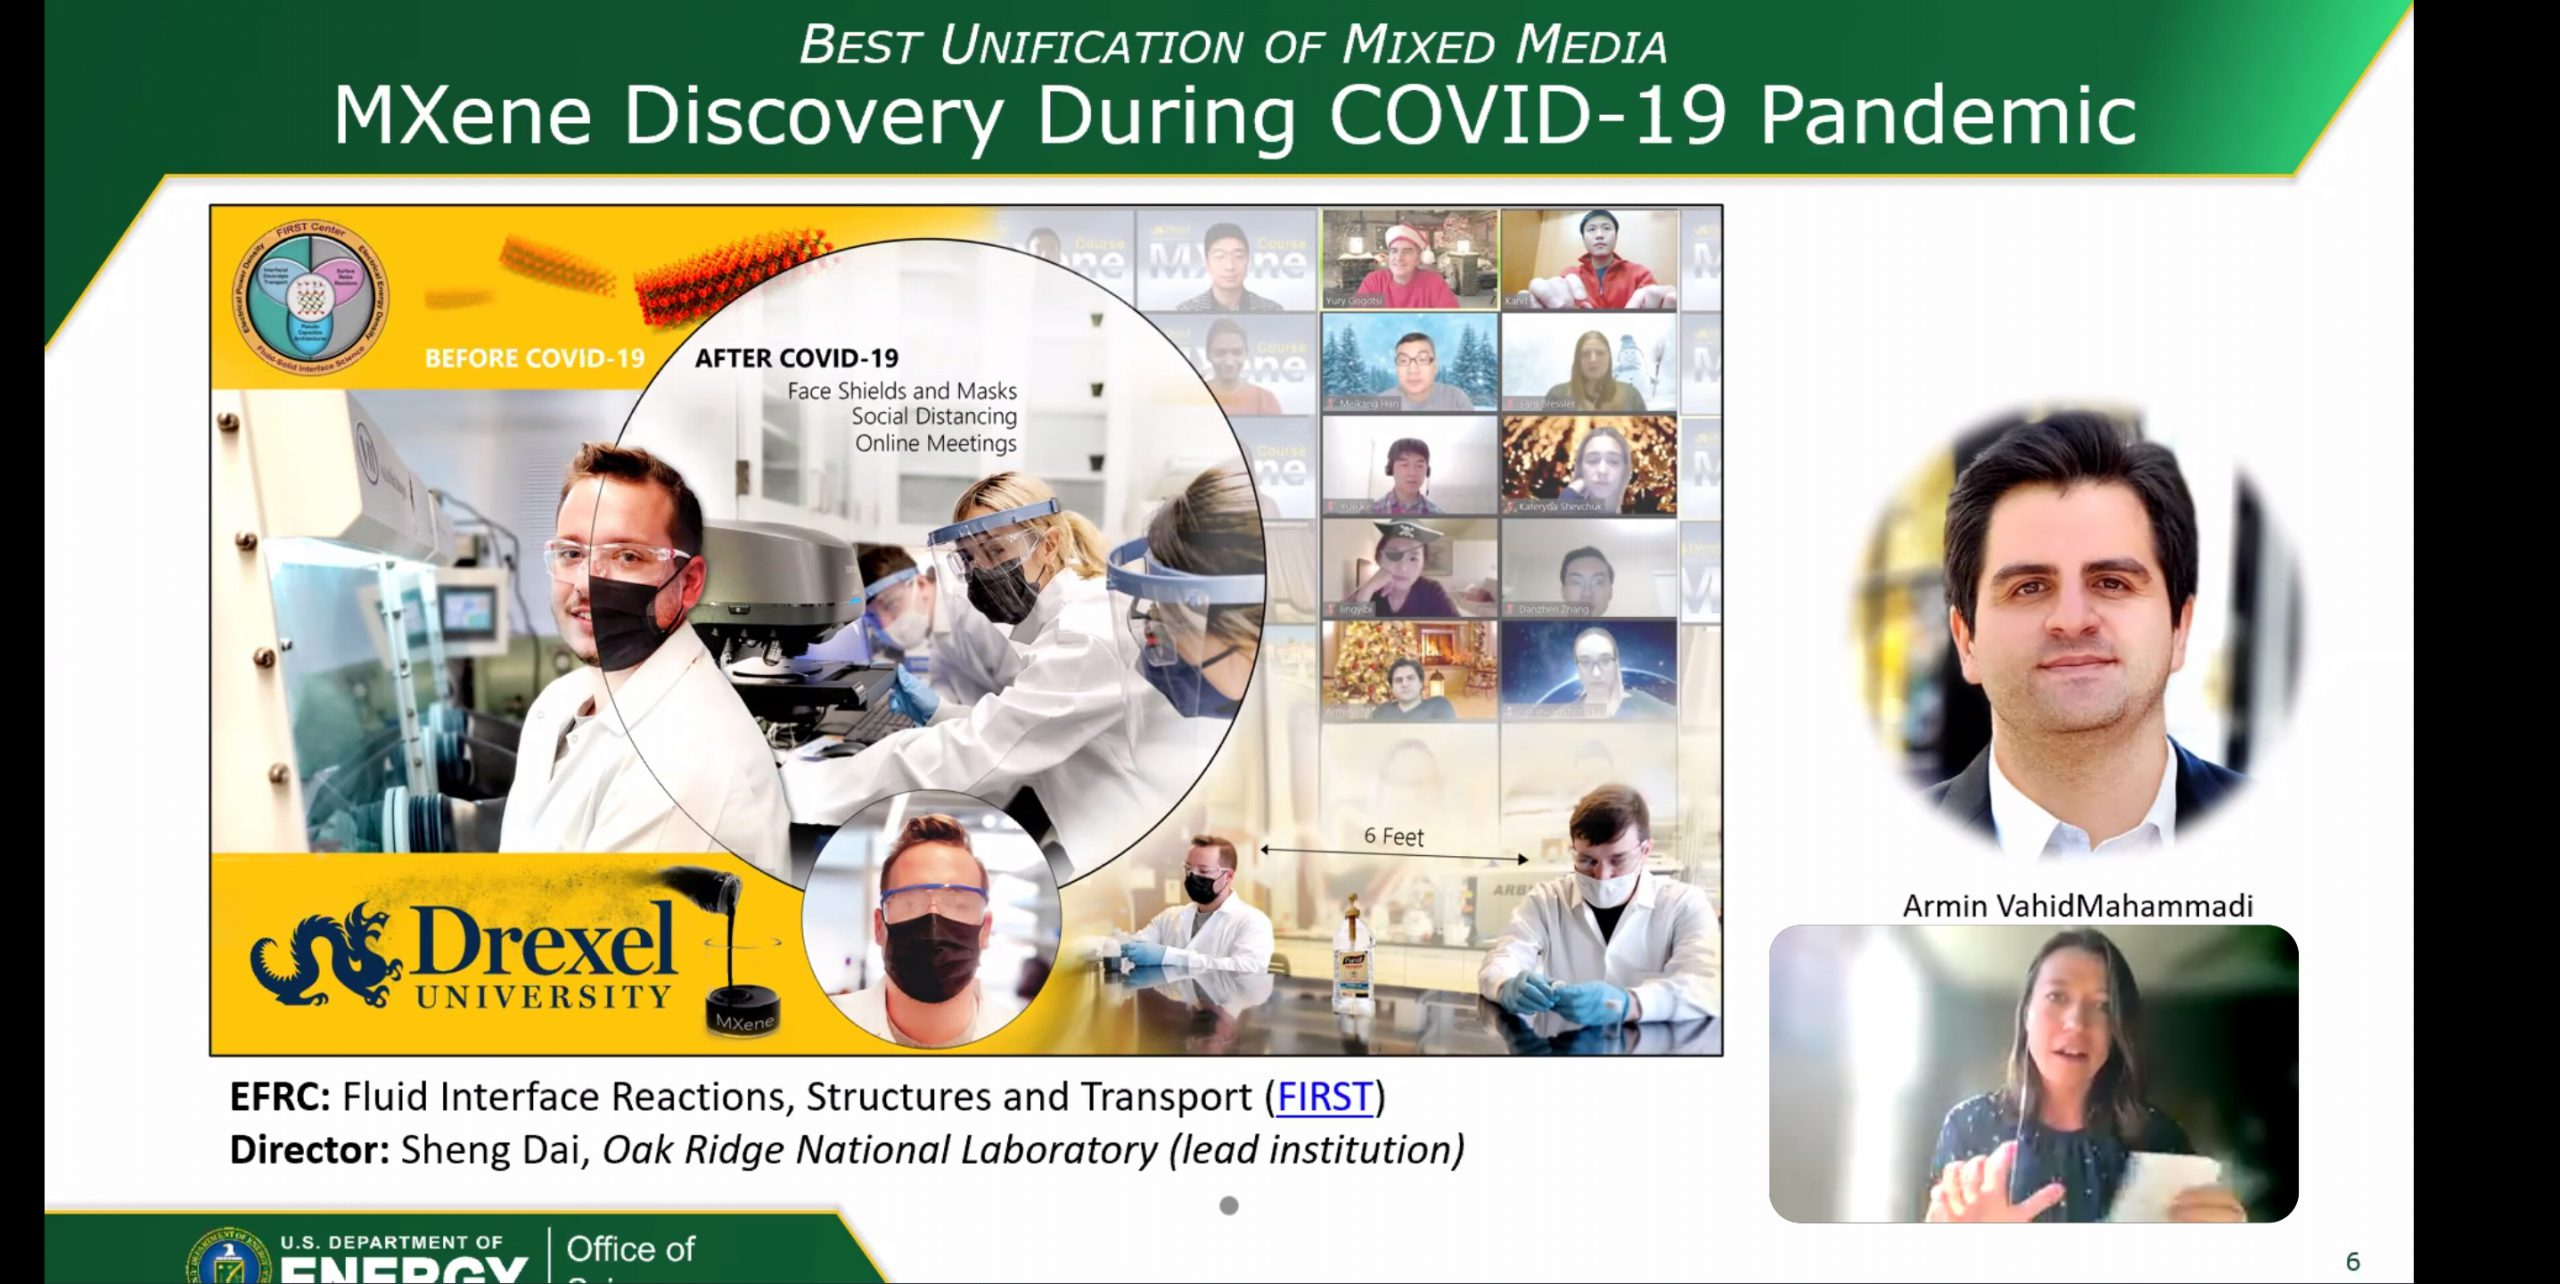 DNI Entry at The People's Choice Award for the Science in the Time of Covid Graphic Art Contest Was Recognized as One of the Winners